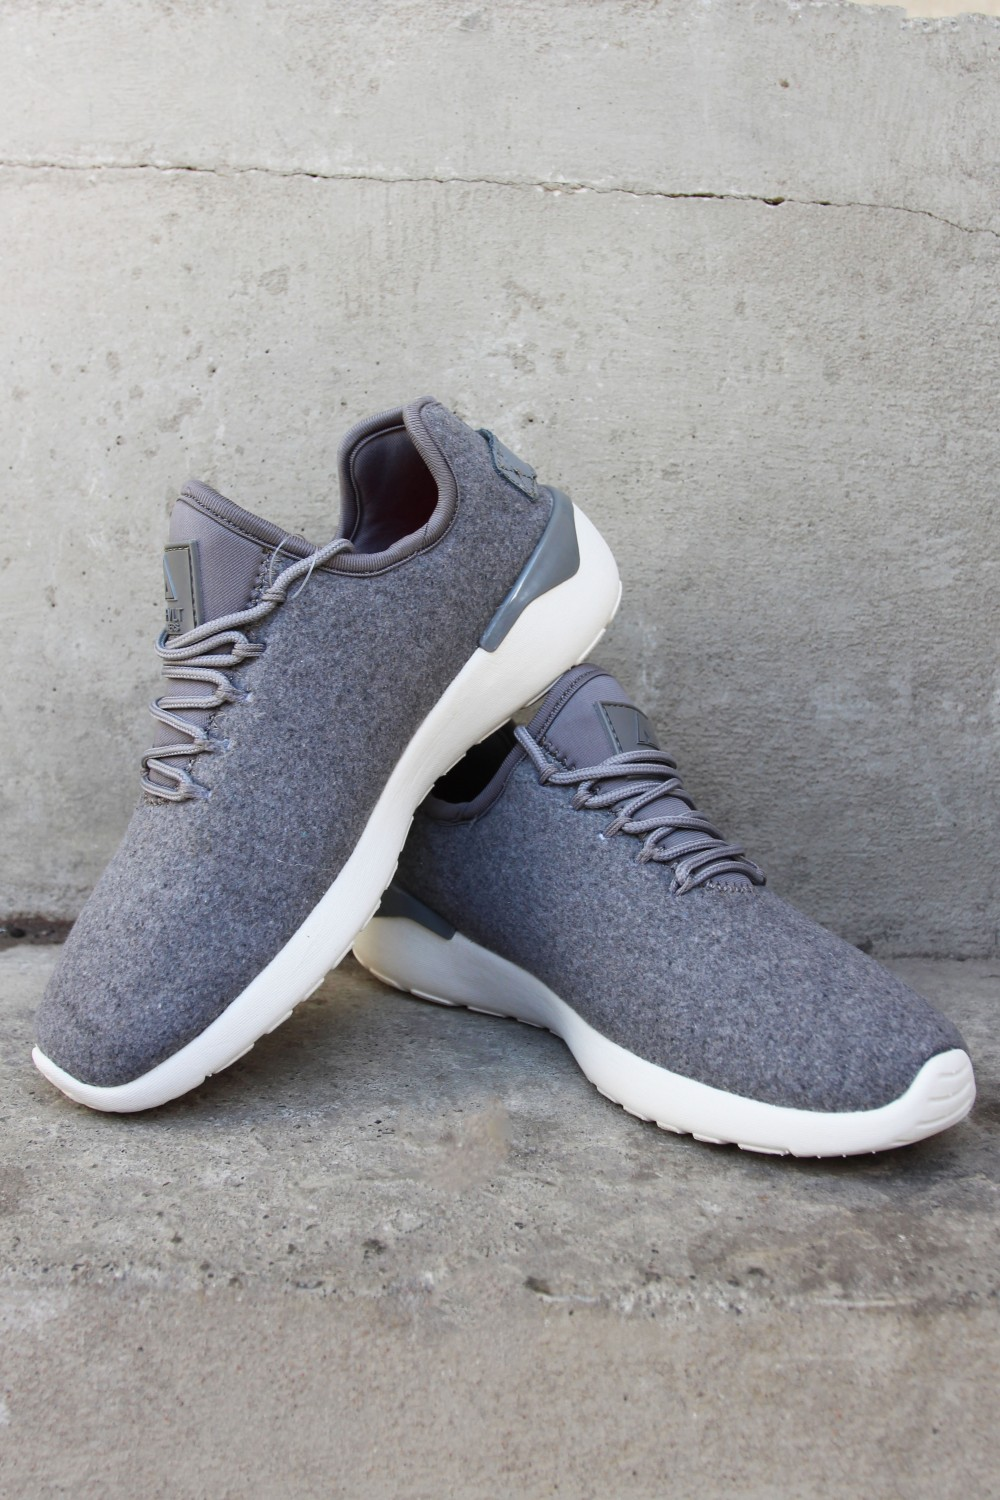 ad5a7371 Asfvlt Speed Sock Grey Wool Asfvlt Speed Sock Grey Wool ...